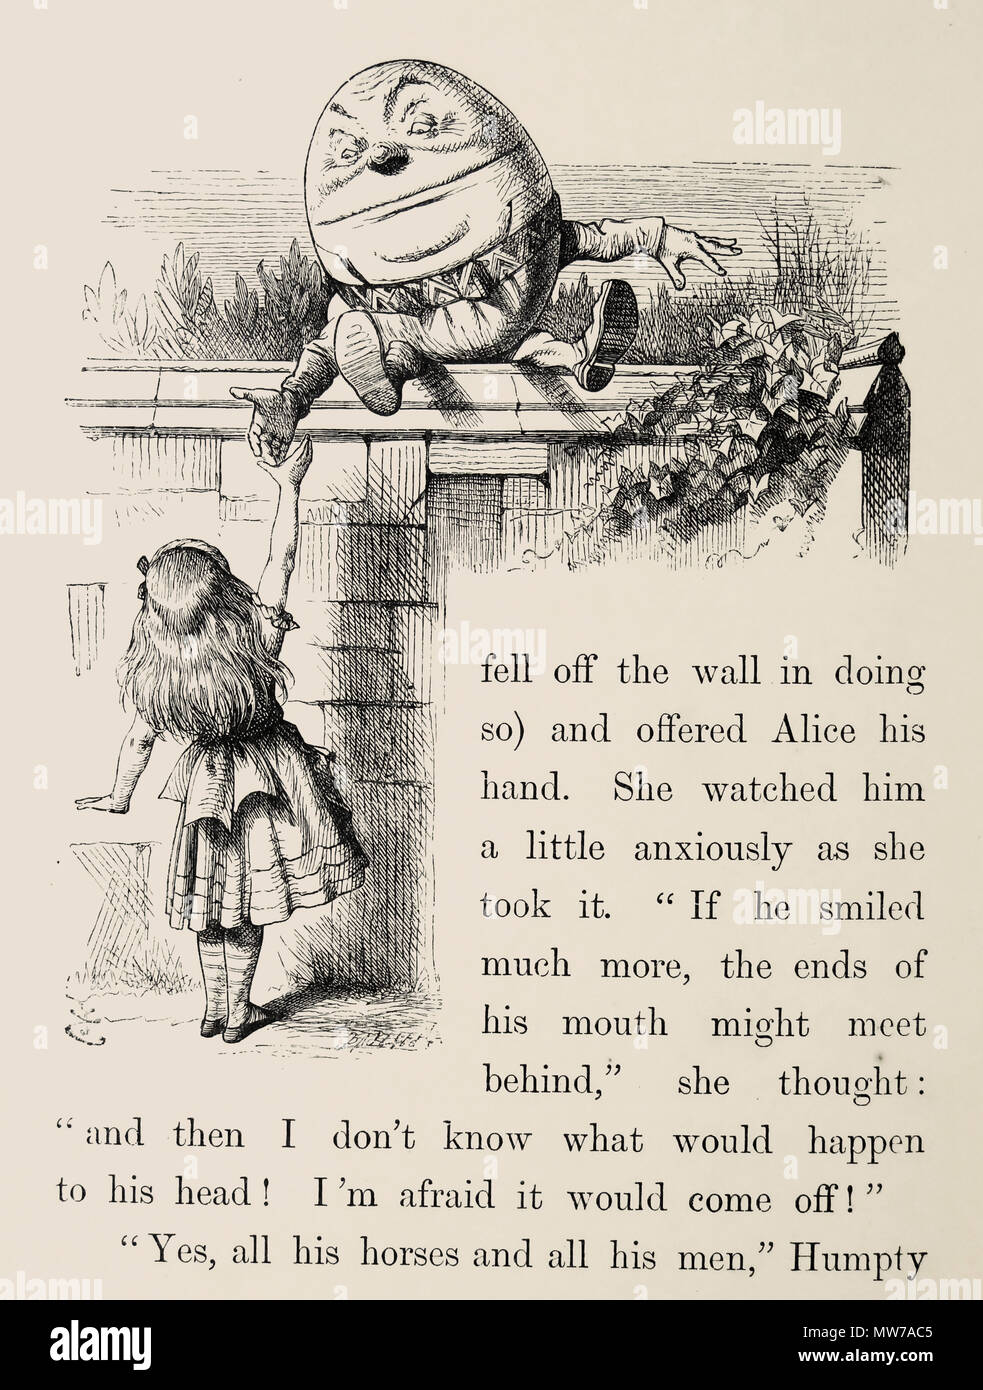 humpty dumpty alice through the looking glass